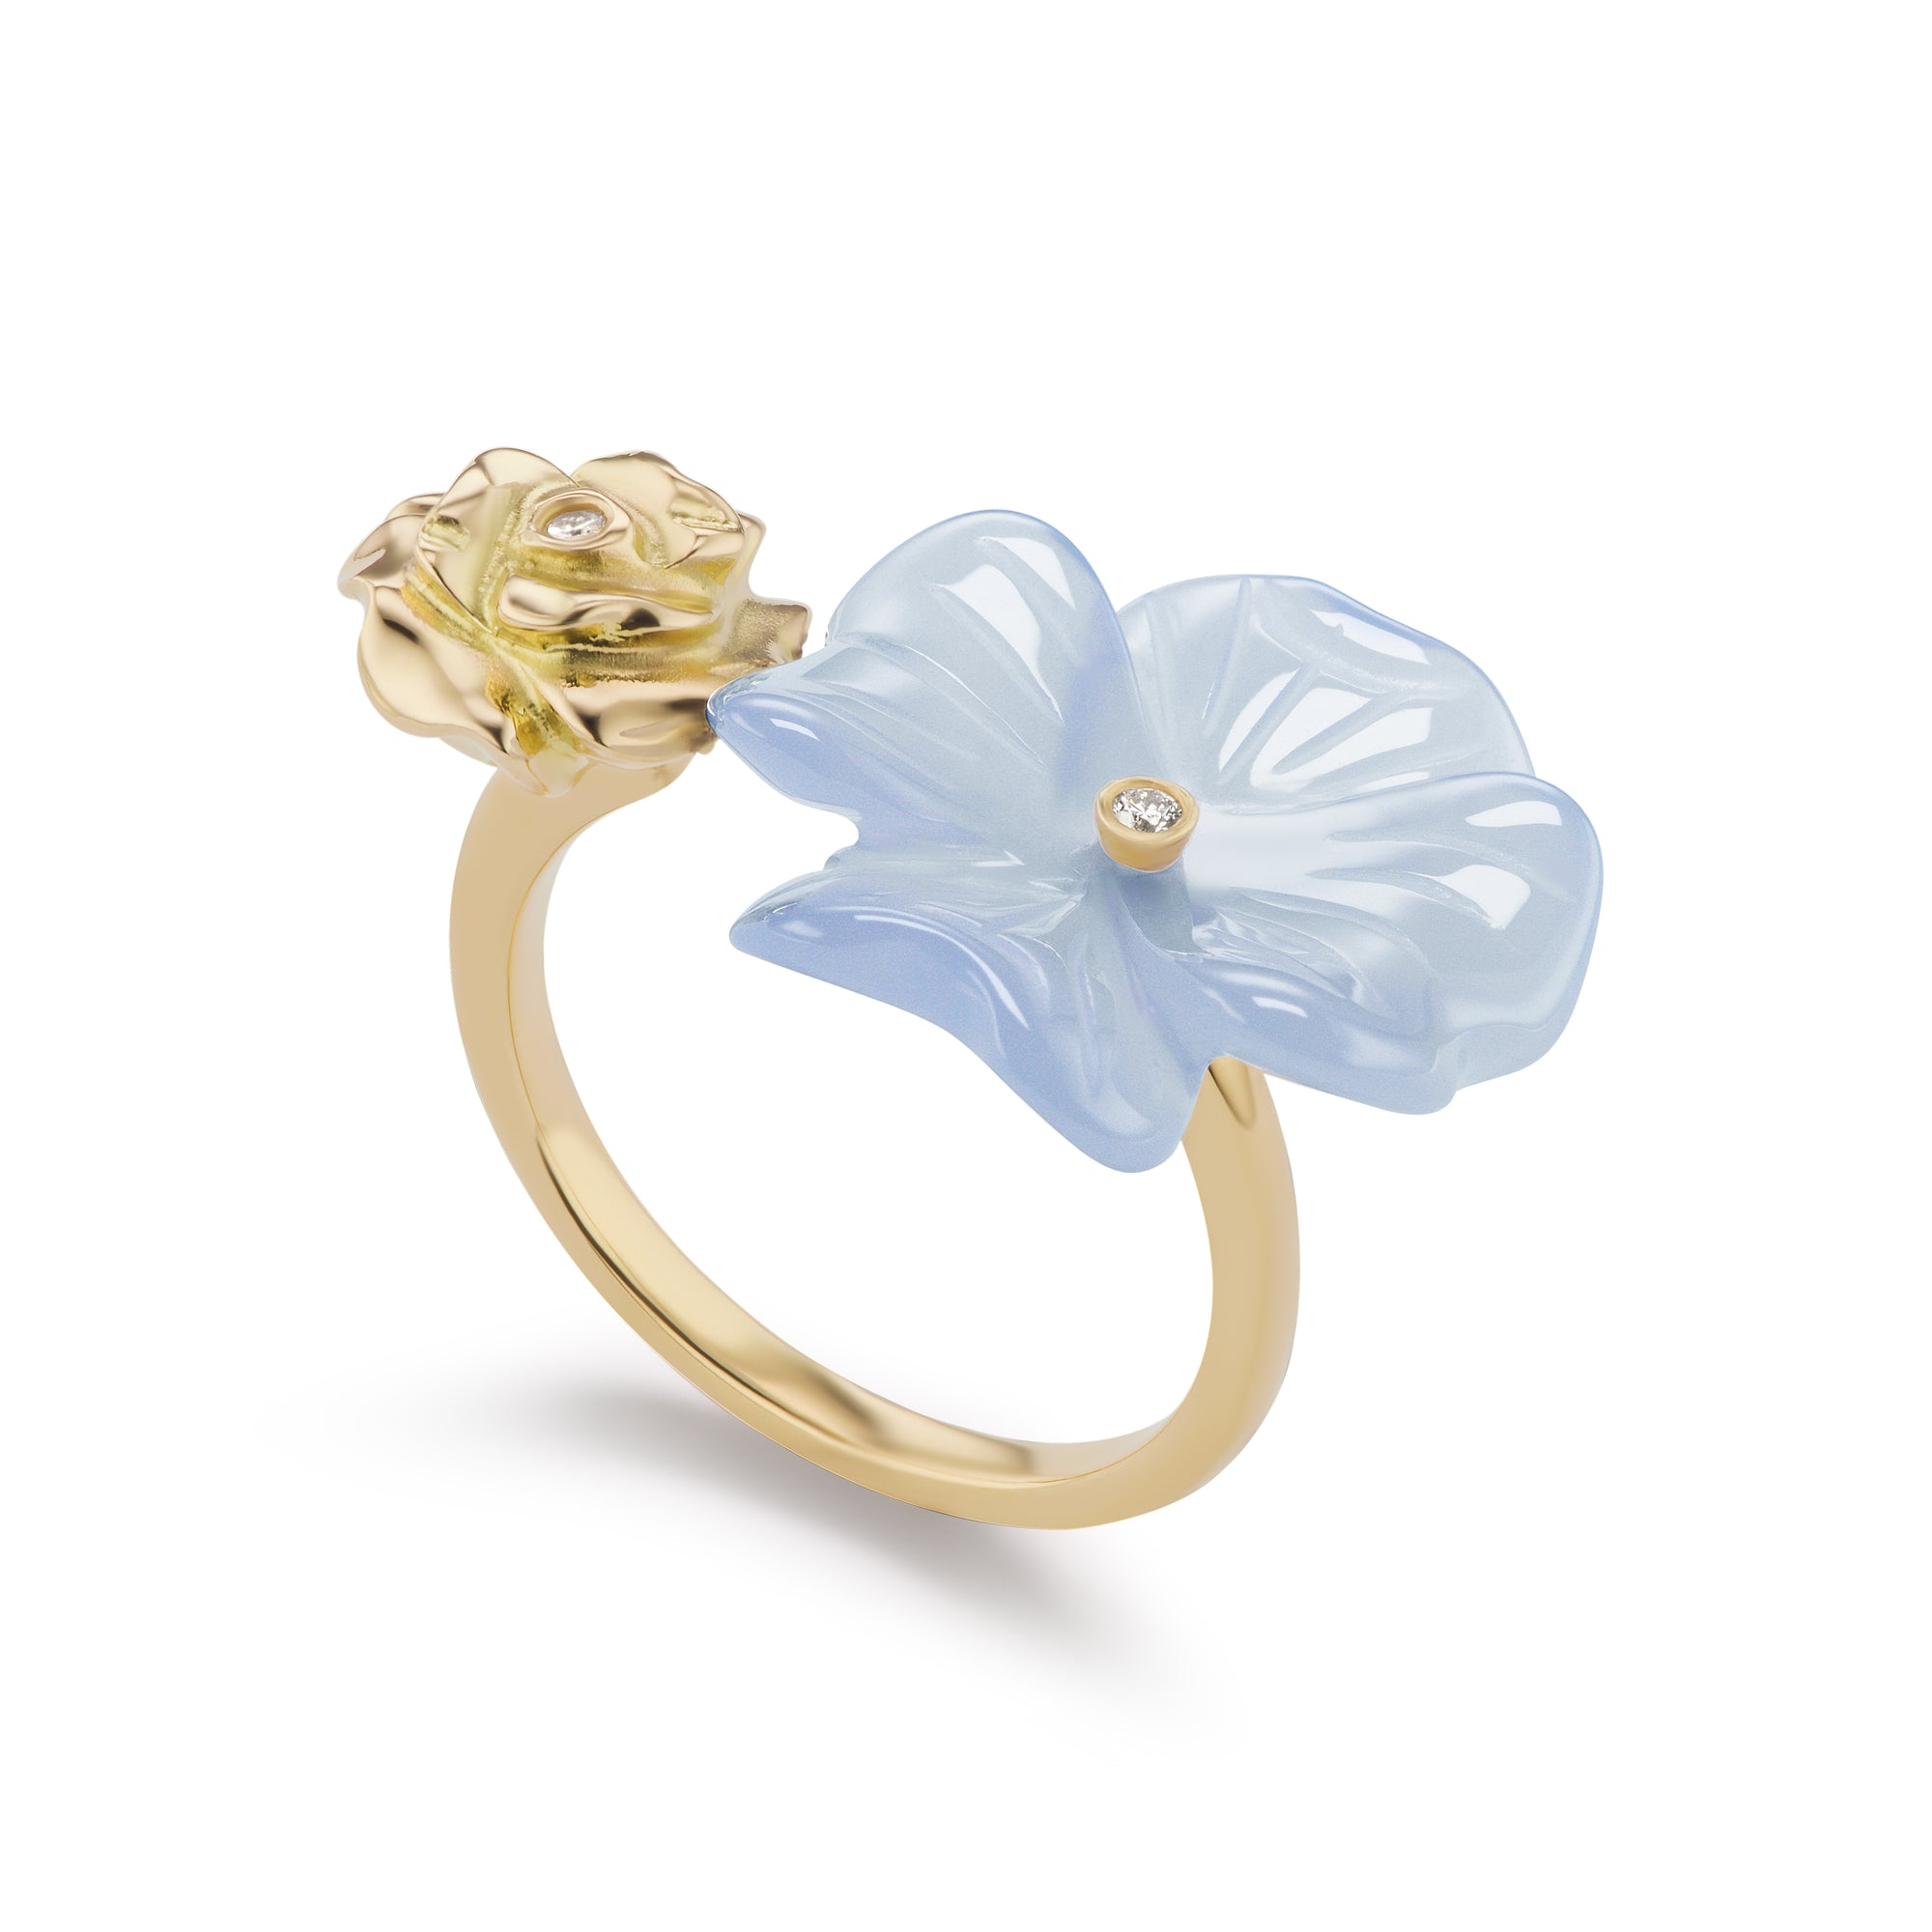 Clover & Rose Double-Sided Ring